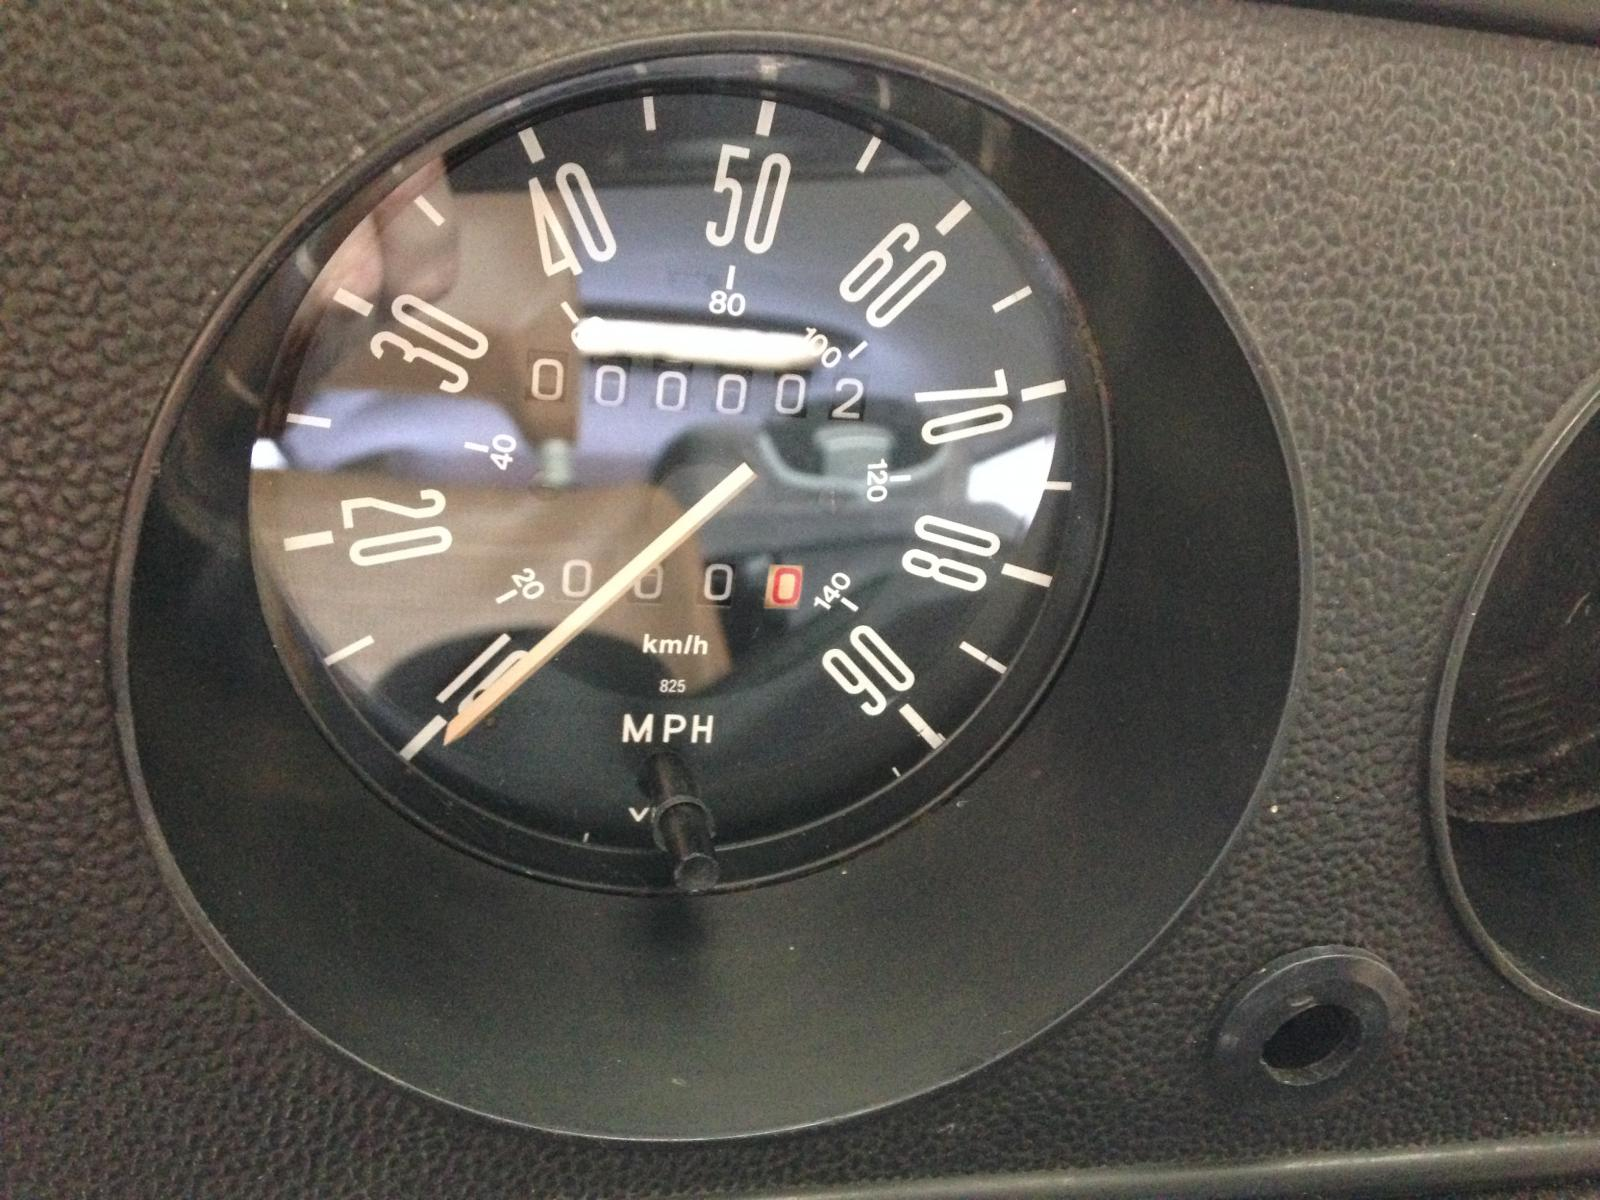 MPH speedometer with trip pdometer